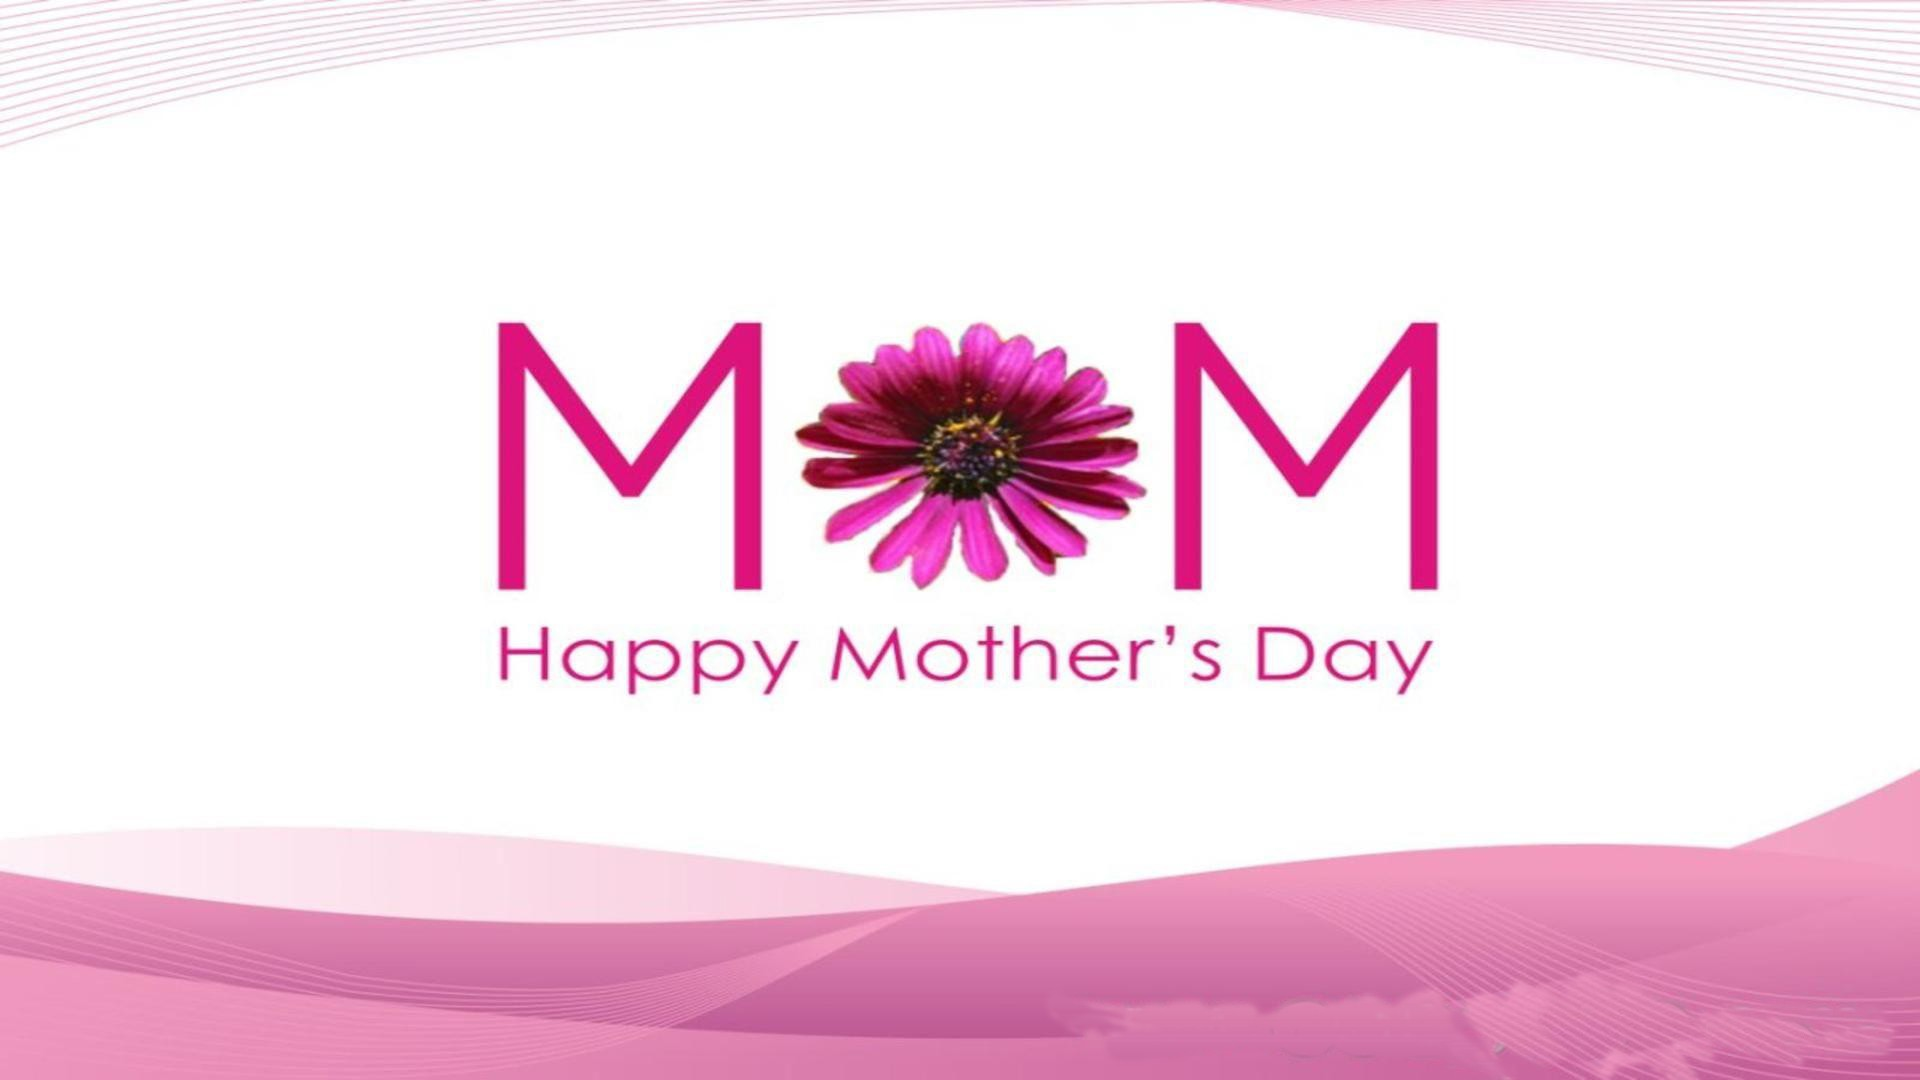 Happy Mood Quotes Wallpapers Mother S Day Background 183 ① Download Free Wallpapers For